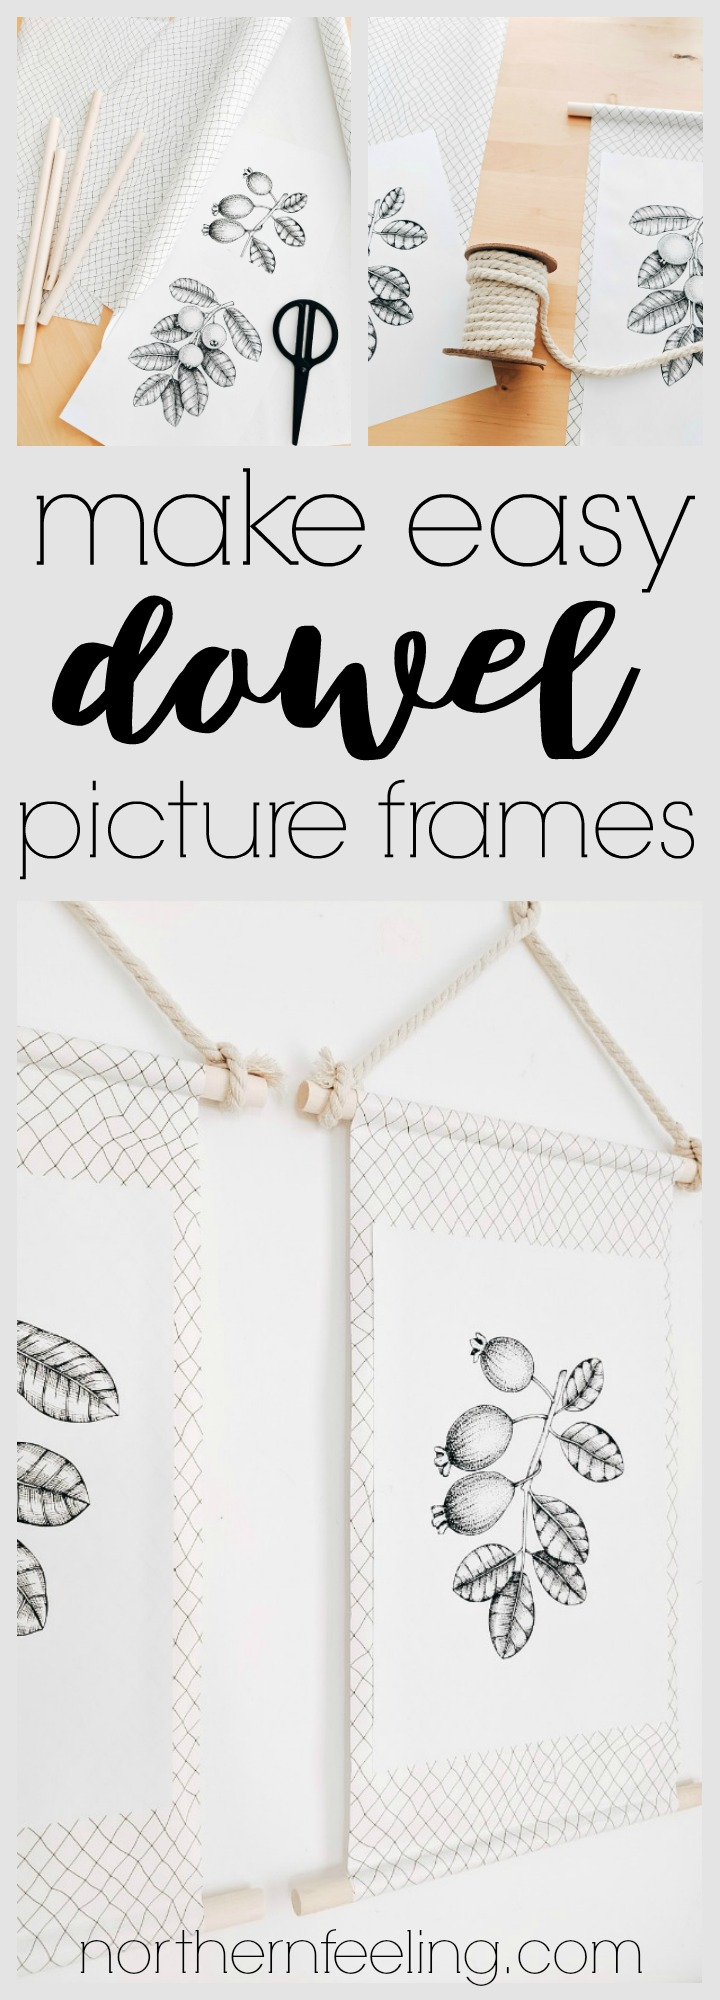 how to make easy dowel picture frames + free printables // northernfeeling.com